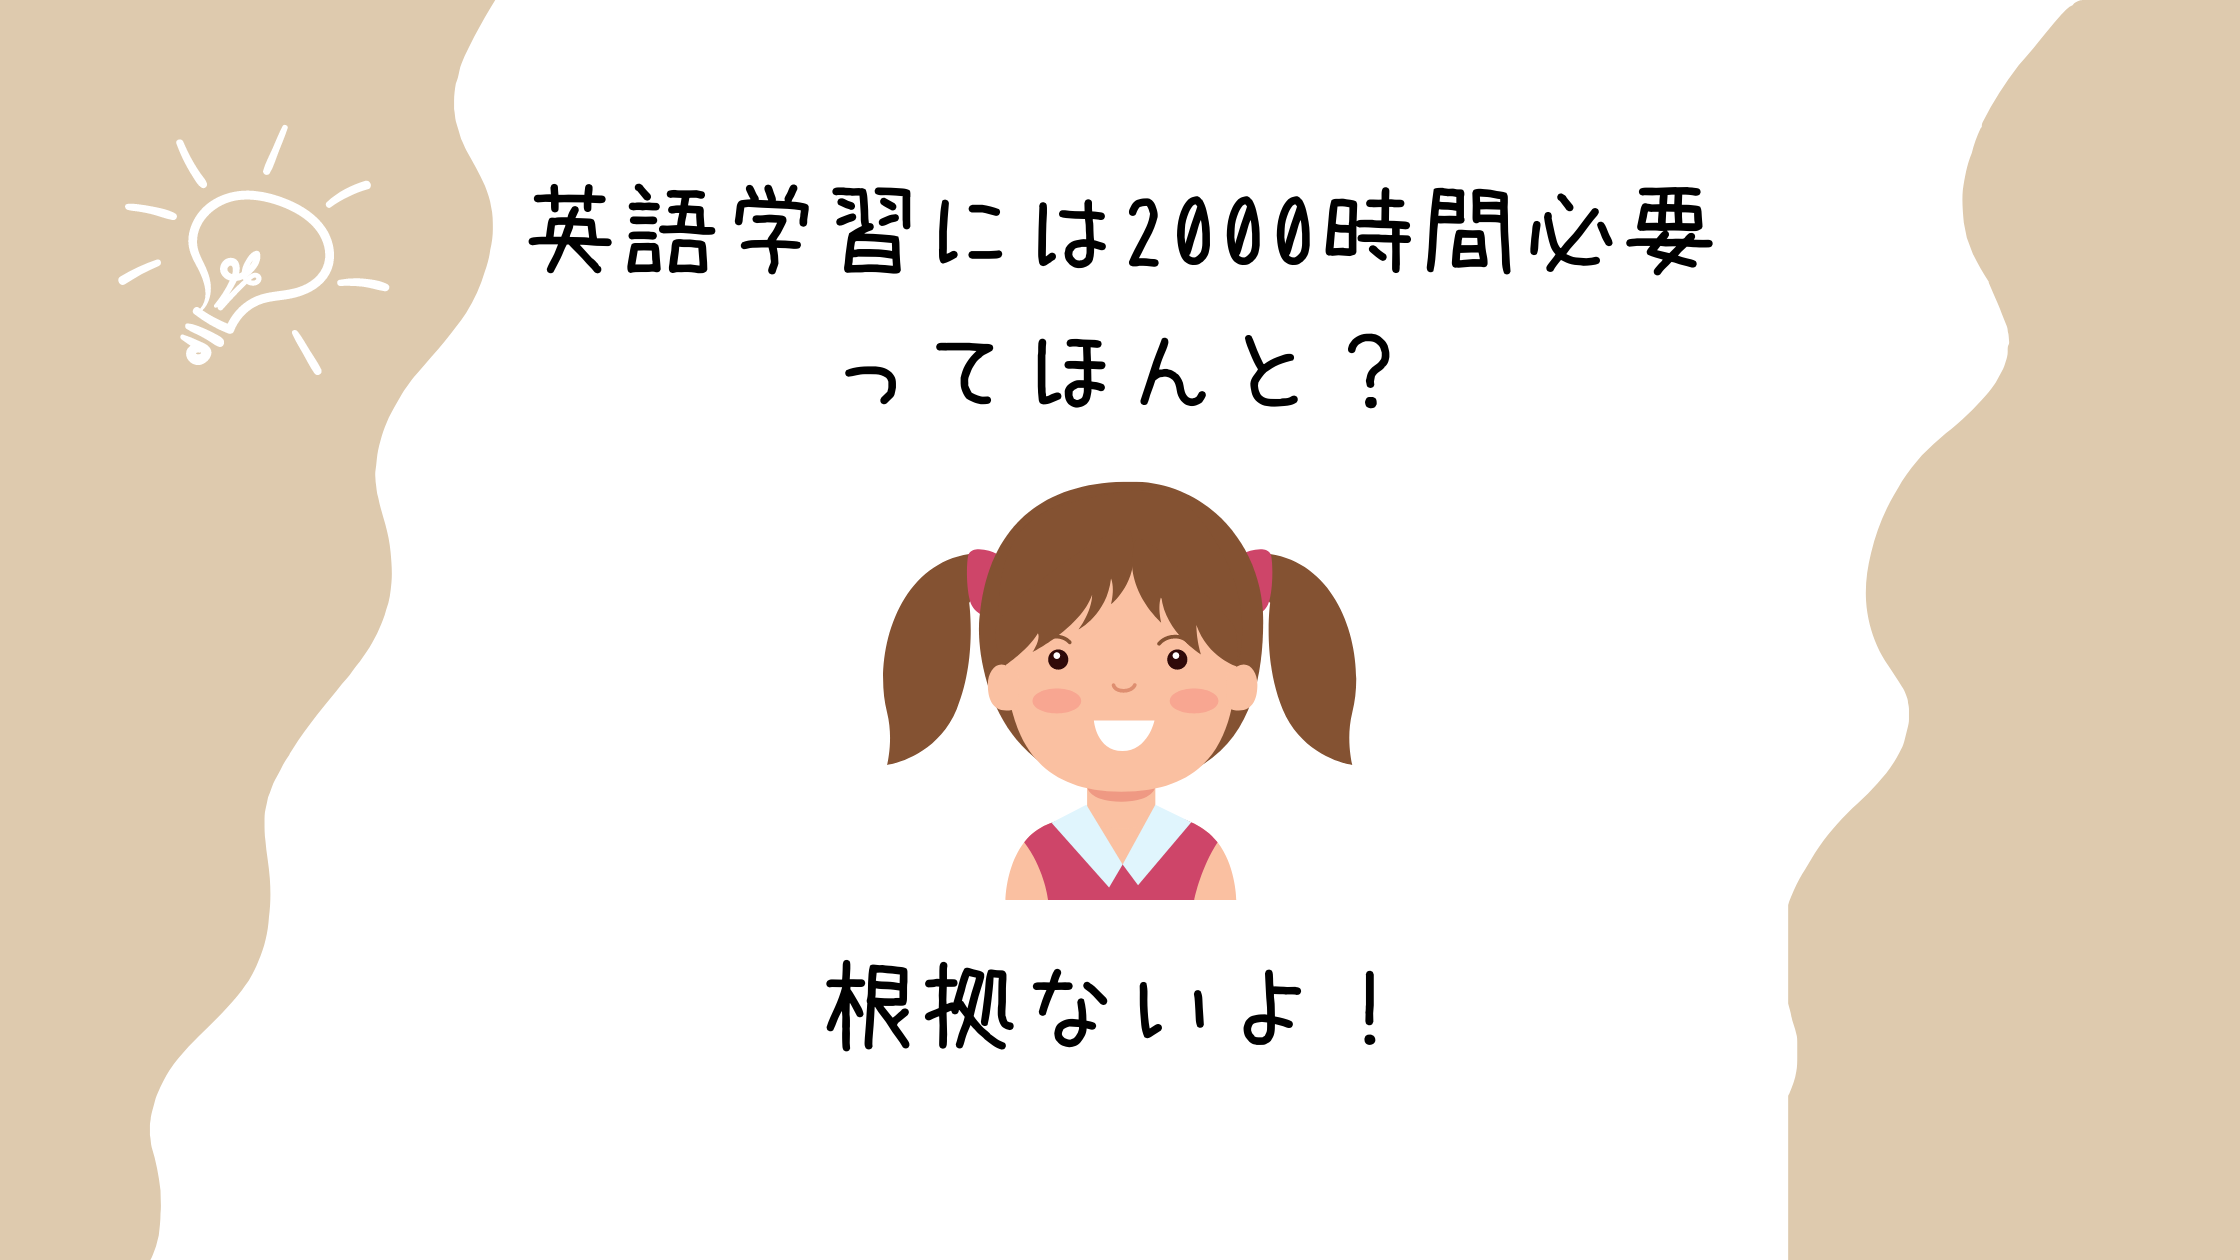 2000h for english